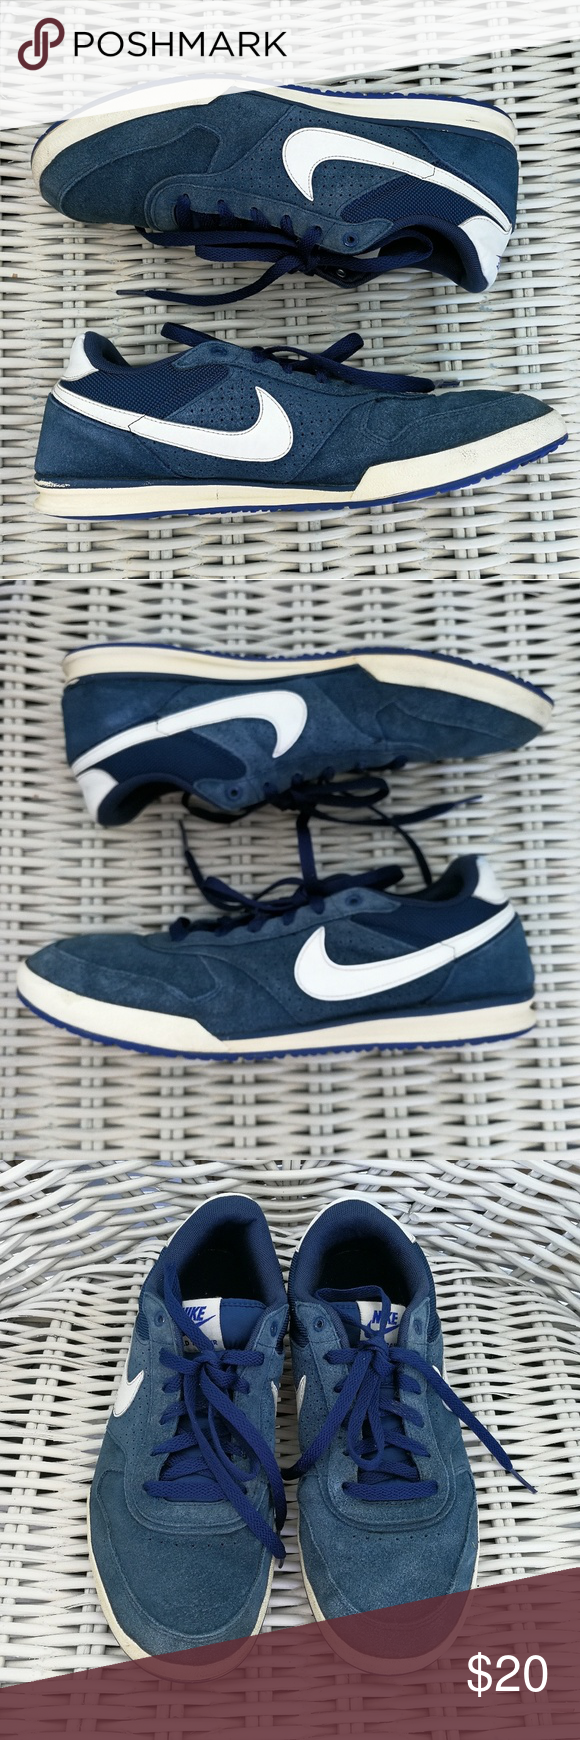 huge discount 5477f ef2cb 9.5 NIKE Field Trainer Blue Suede 443918-414 sail Great condition. No  trades. Priced to sell. Price is FIRM. Nike Shoes Sneakers